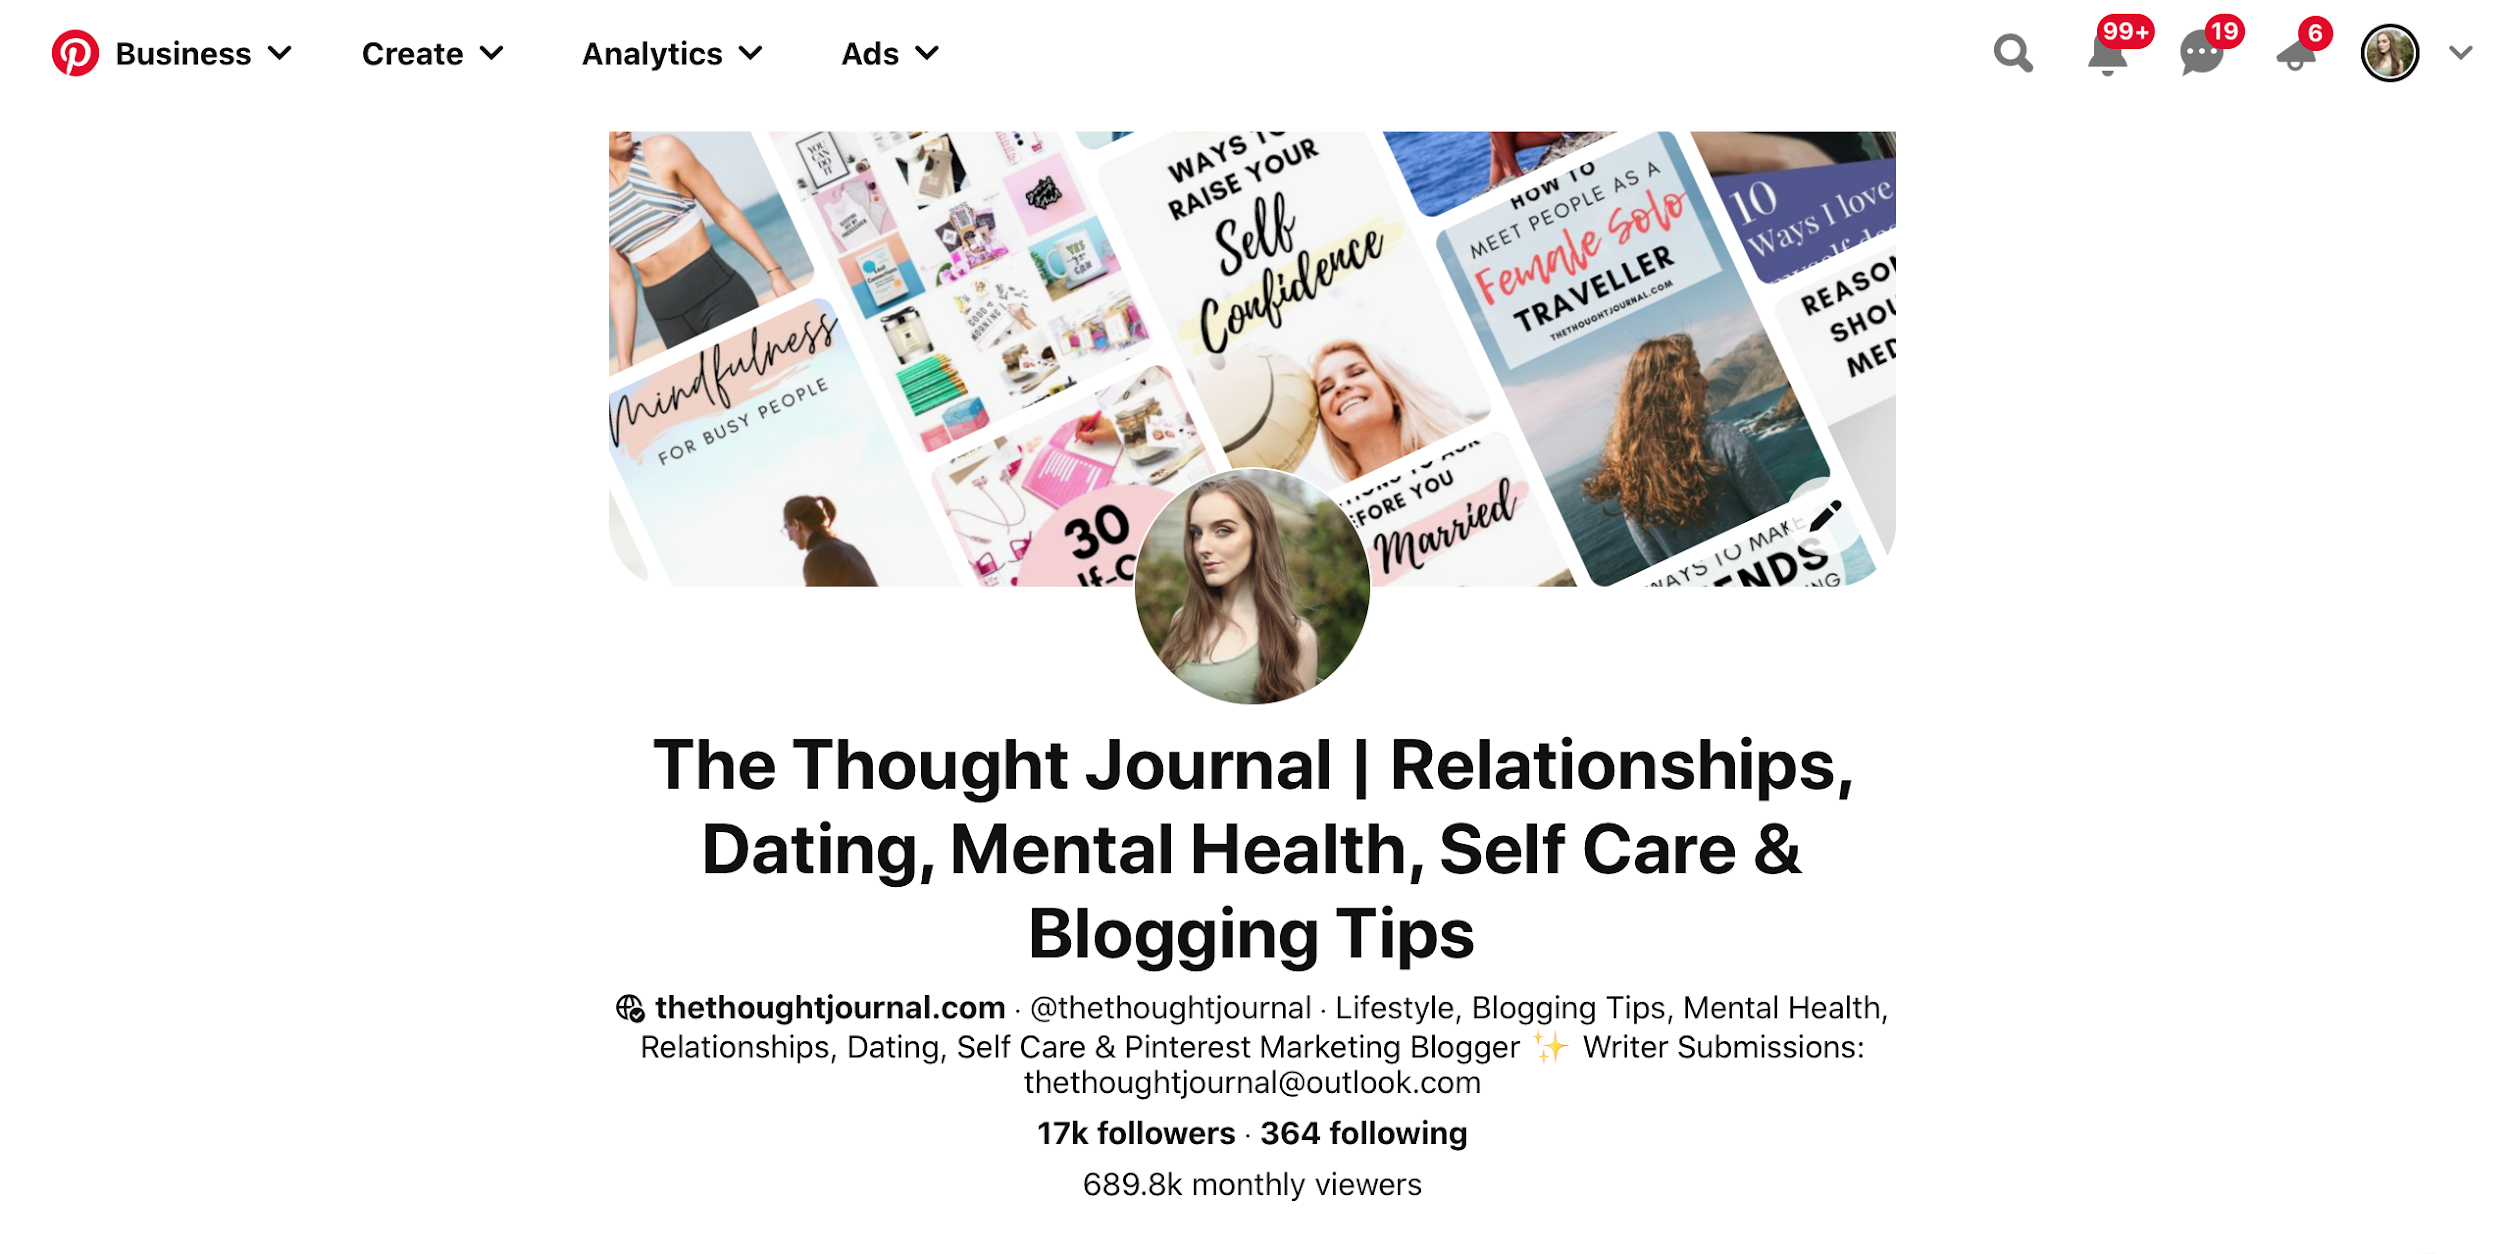 The Thought Journal wellness blog